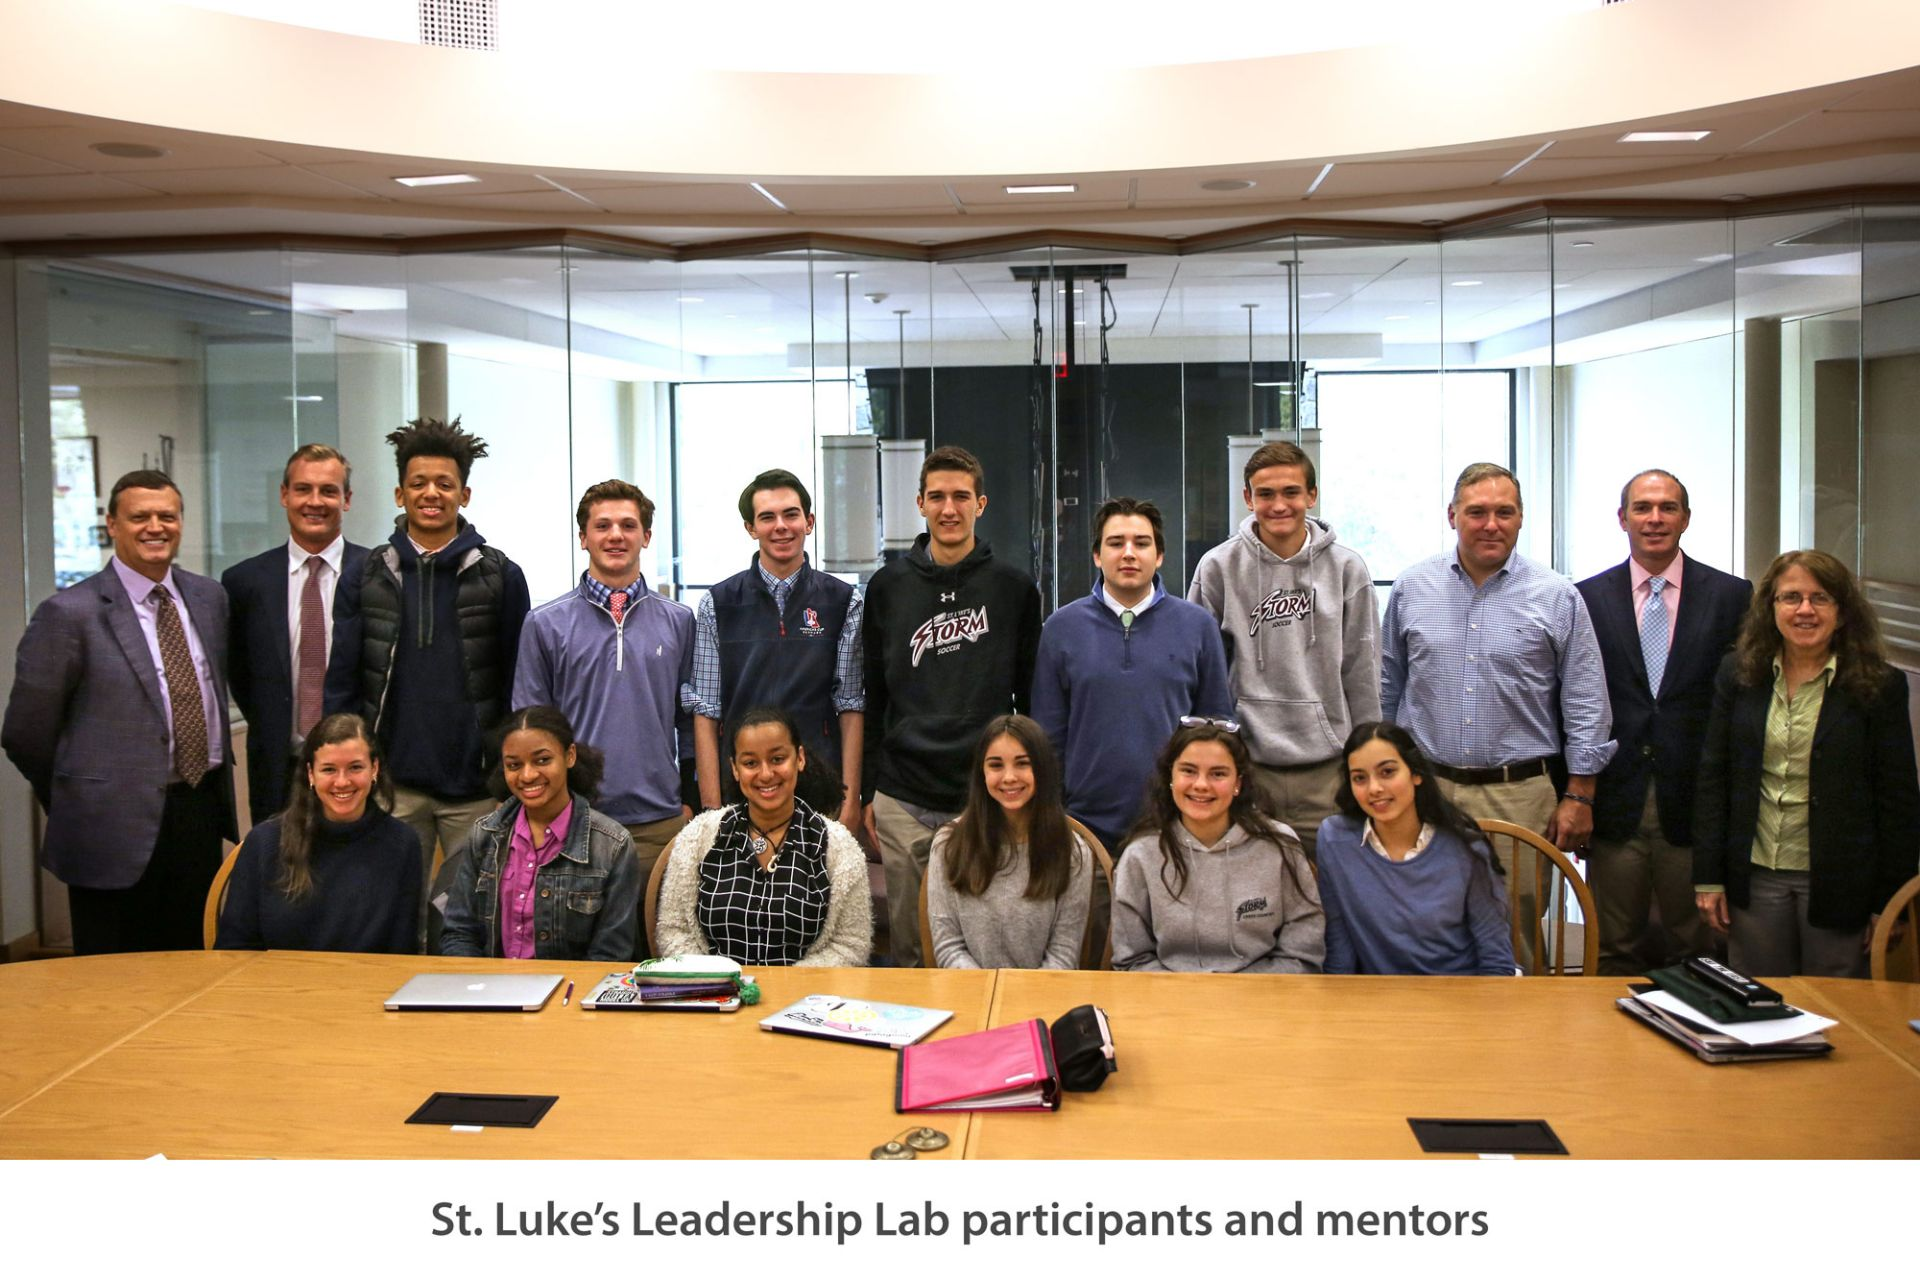 St. Luke's Center for Leadership launches the Leadership Lab: The Power of Brand, a week-long mentorship between successful business leaders and student interested in entrepreneurship.